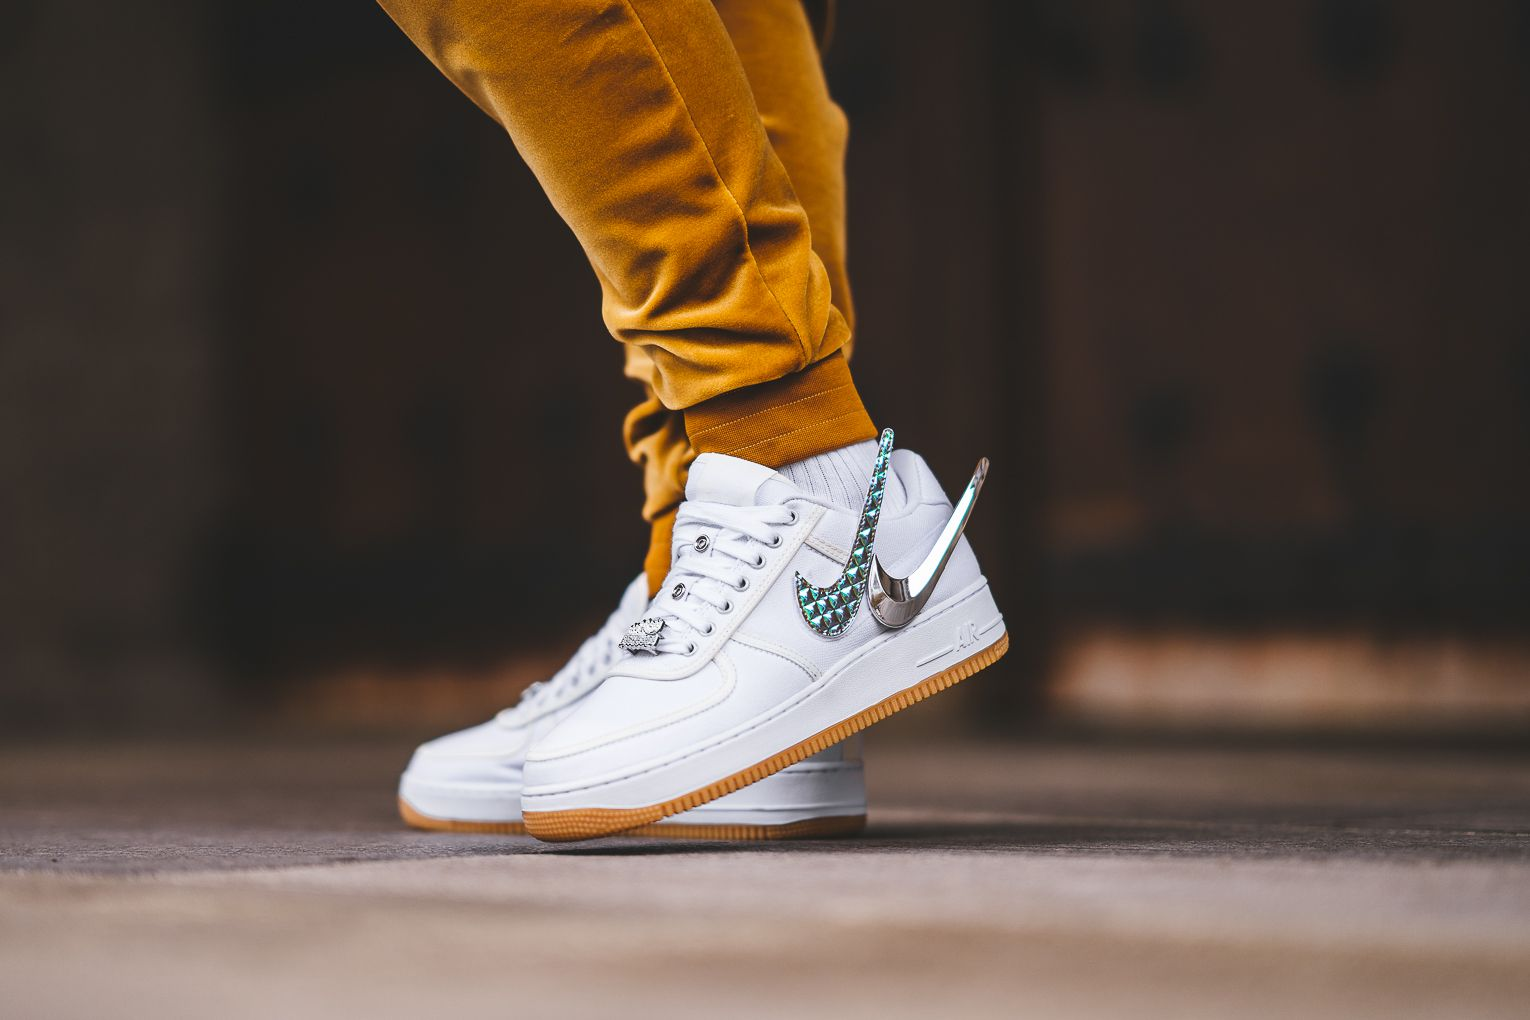 promo code d04c6 1634d An On-Feet Look At The Upcoming Nike Air Force 1 Low x Travis Scott